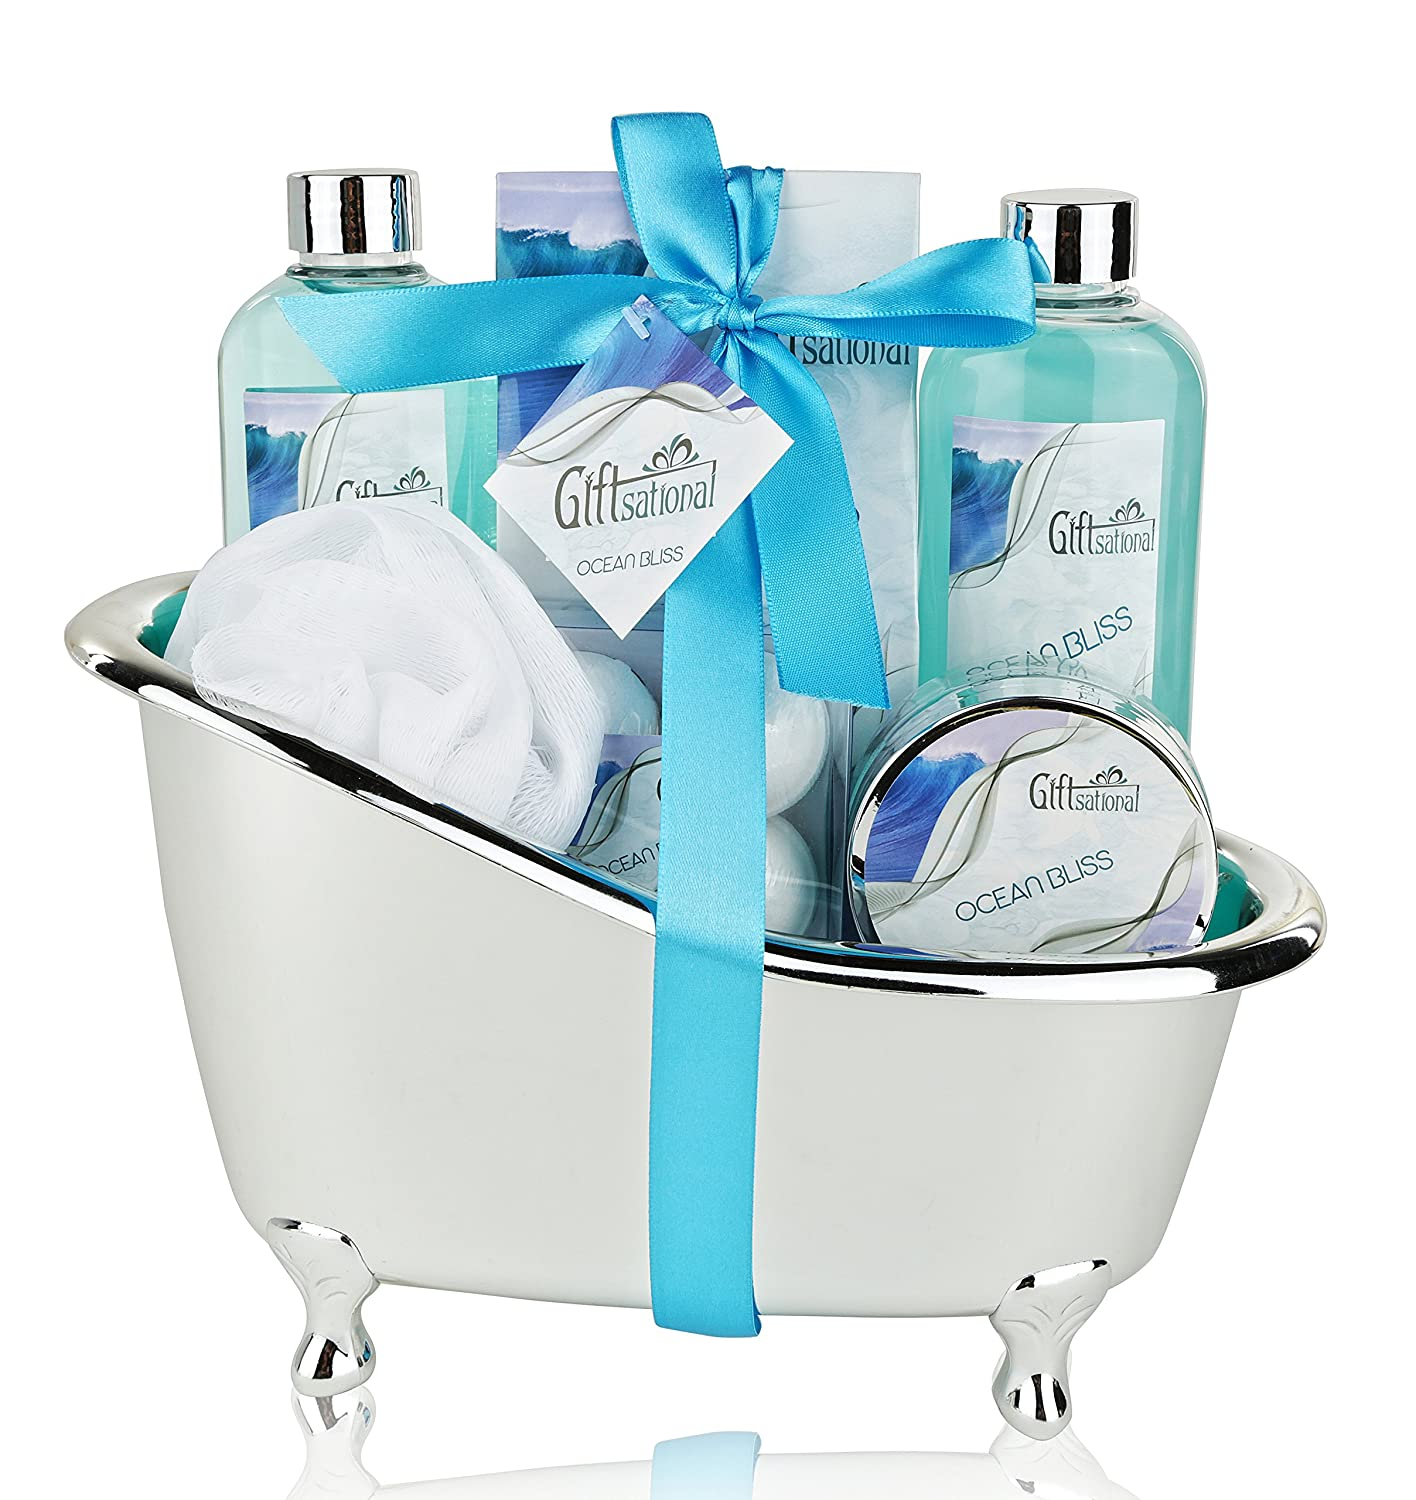 Amazon spa gift basket with refreshing ocean bliss fragrance amazon spa gift basket with refreshing ocean bliss fragrance best mothers day wedding birthday anniversary gift for women bath gift set negle Choice Image